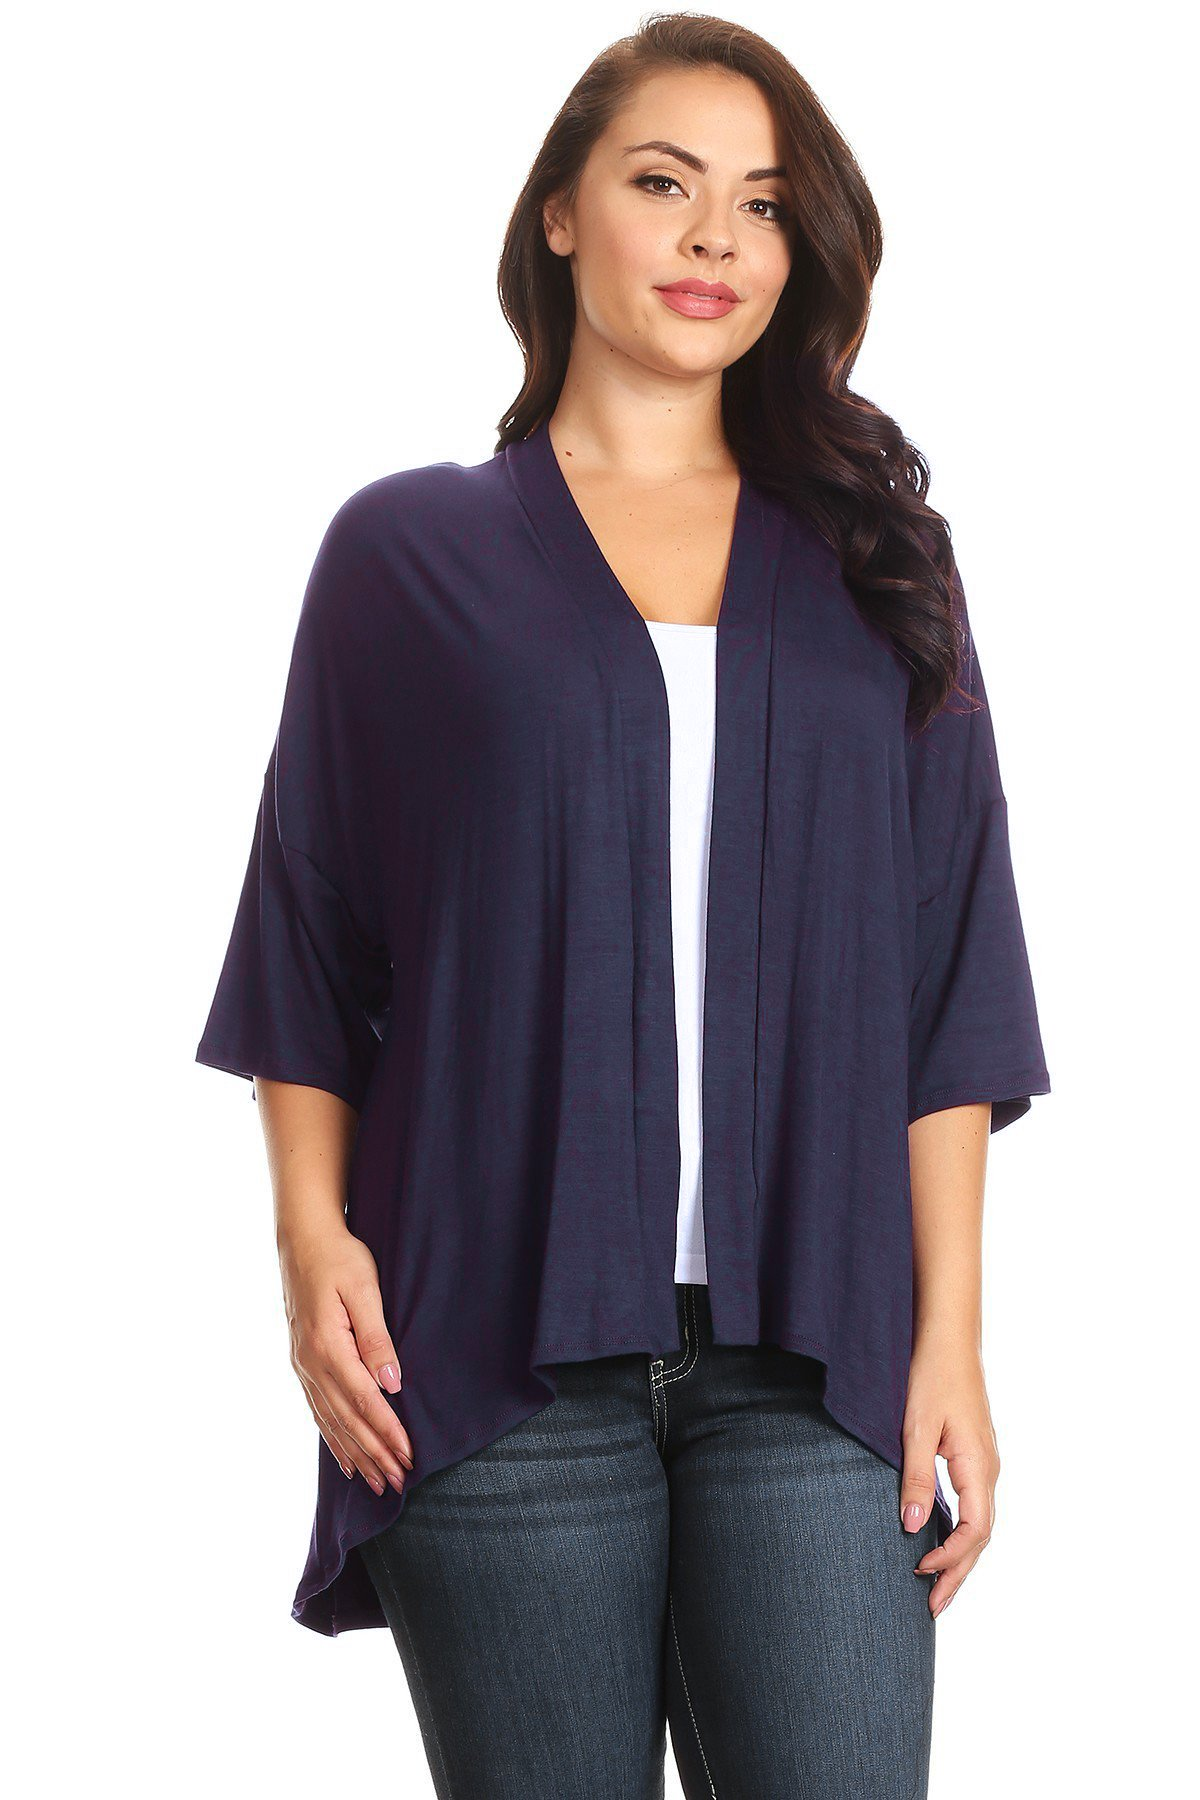 Modern Kiwi Plus Size Solid 3/4 Sleeve Open Front Cardigan Navy 1X